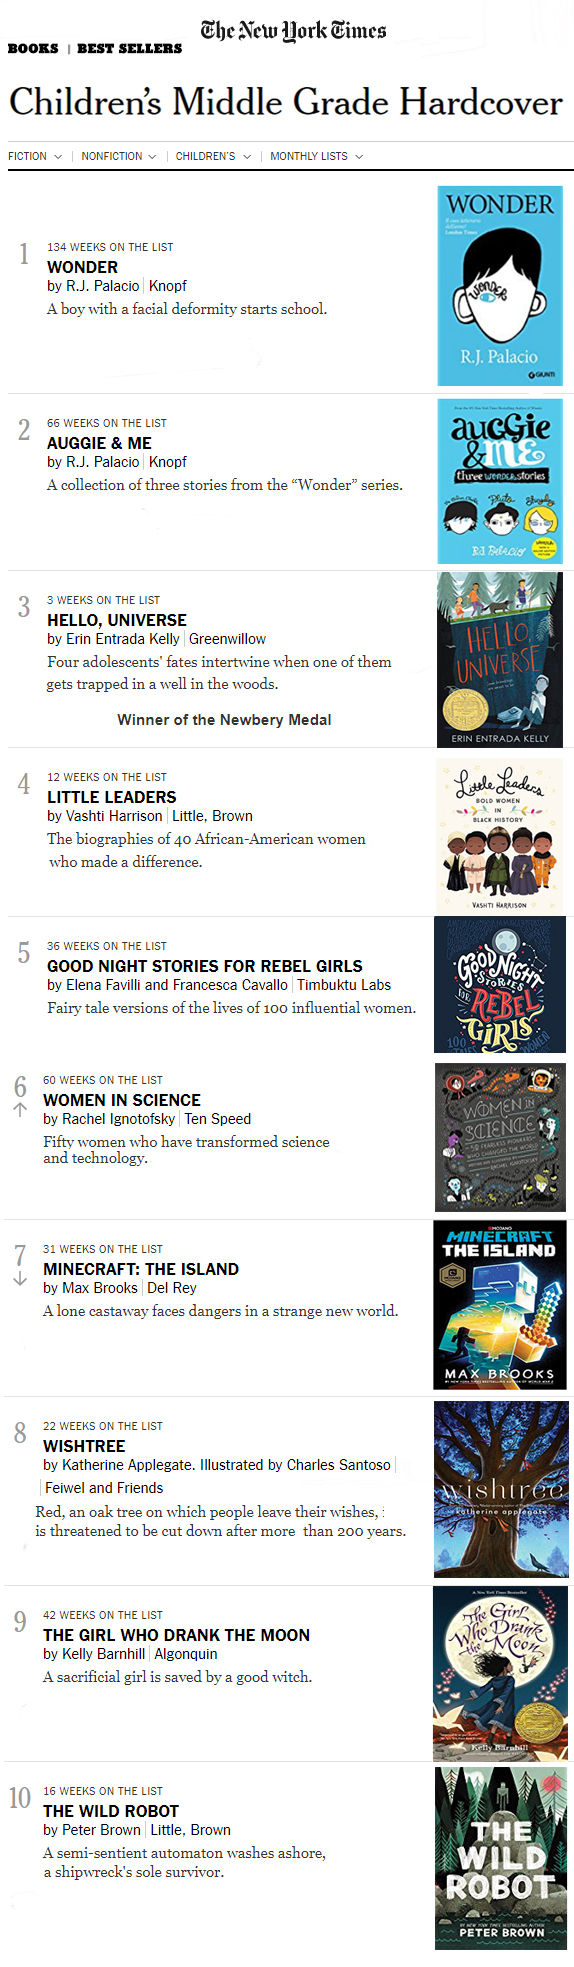 The New York Times Children's Middle Grade Best Sellers ...